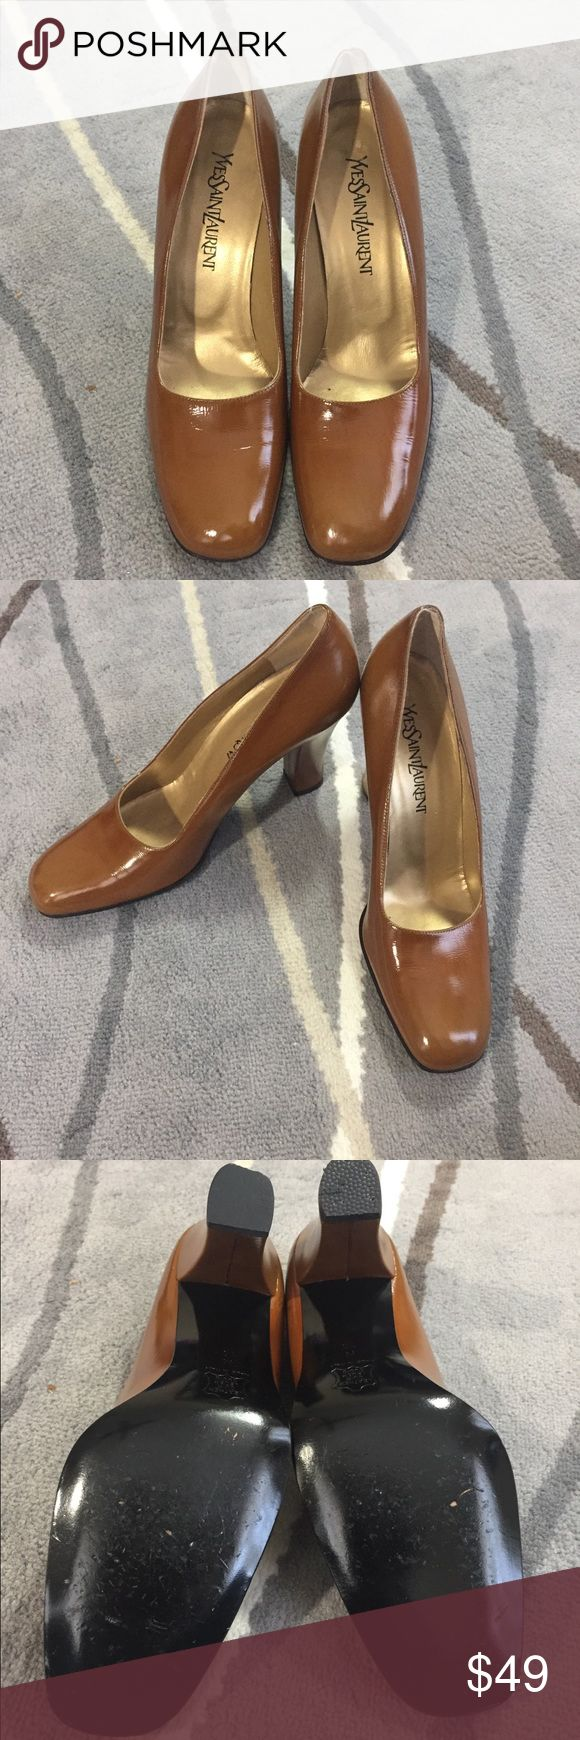 Yves Saint Laurent Vintage Tan Brown Pump Heel 10 Excellent condition YSL vintage brown pumps with black bottoms. Heel pad was repaired and have not been worn since. Has minor signs of wear but overall still in excellent condition as seen in photos. Yves Saint Laurent Shoes Heels